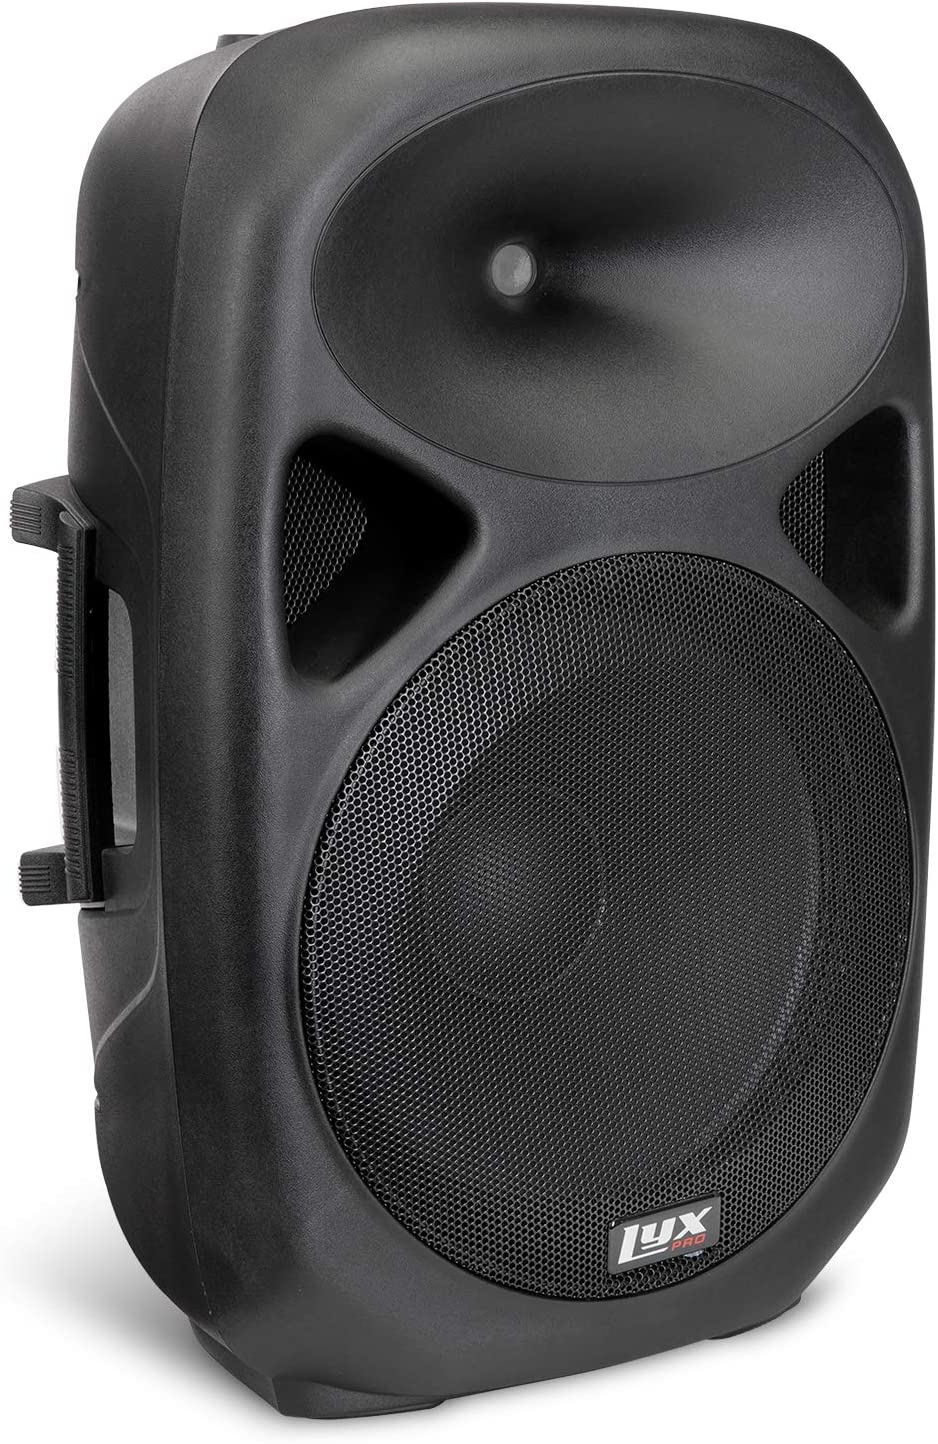 """LyxPro 15 Inch PA Active Speaker System Compact And Portable With Equalizer, Bluetooth, MP3, USB, SD Card Slot, XLR, 1/4"""", 3.5mm Input, Carry Handles, SPA-15"""